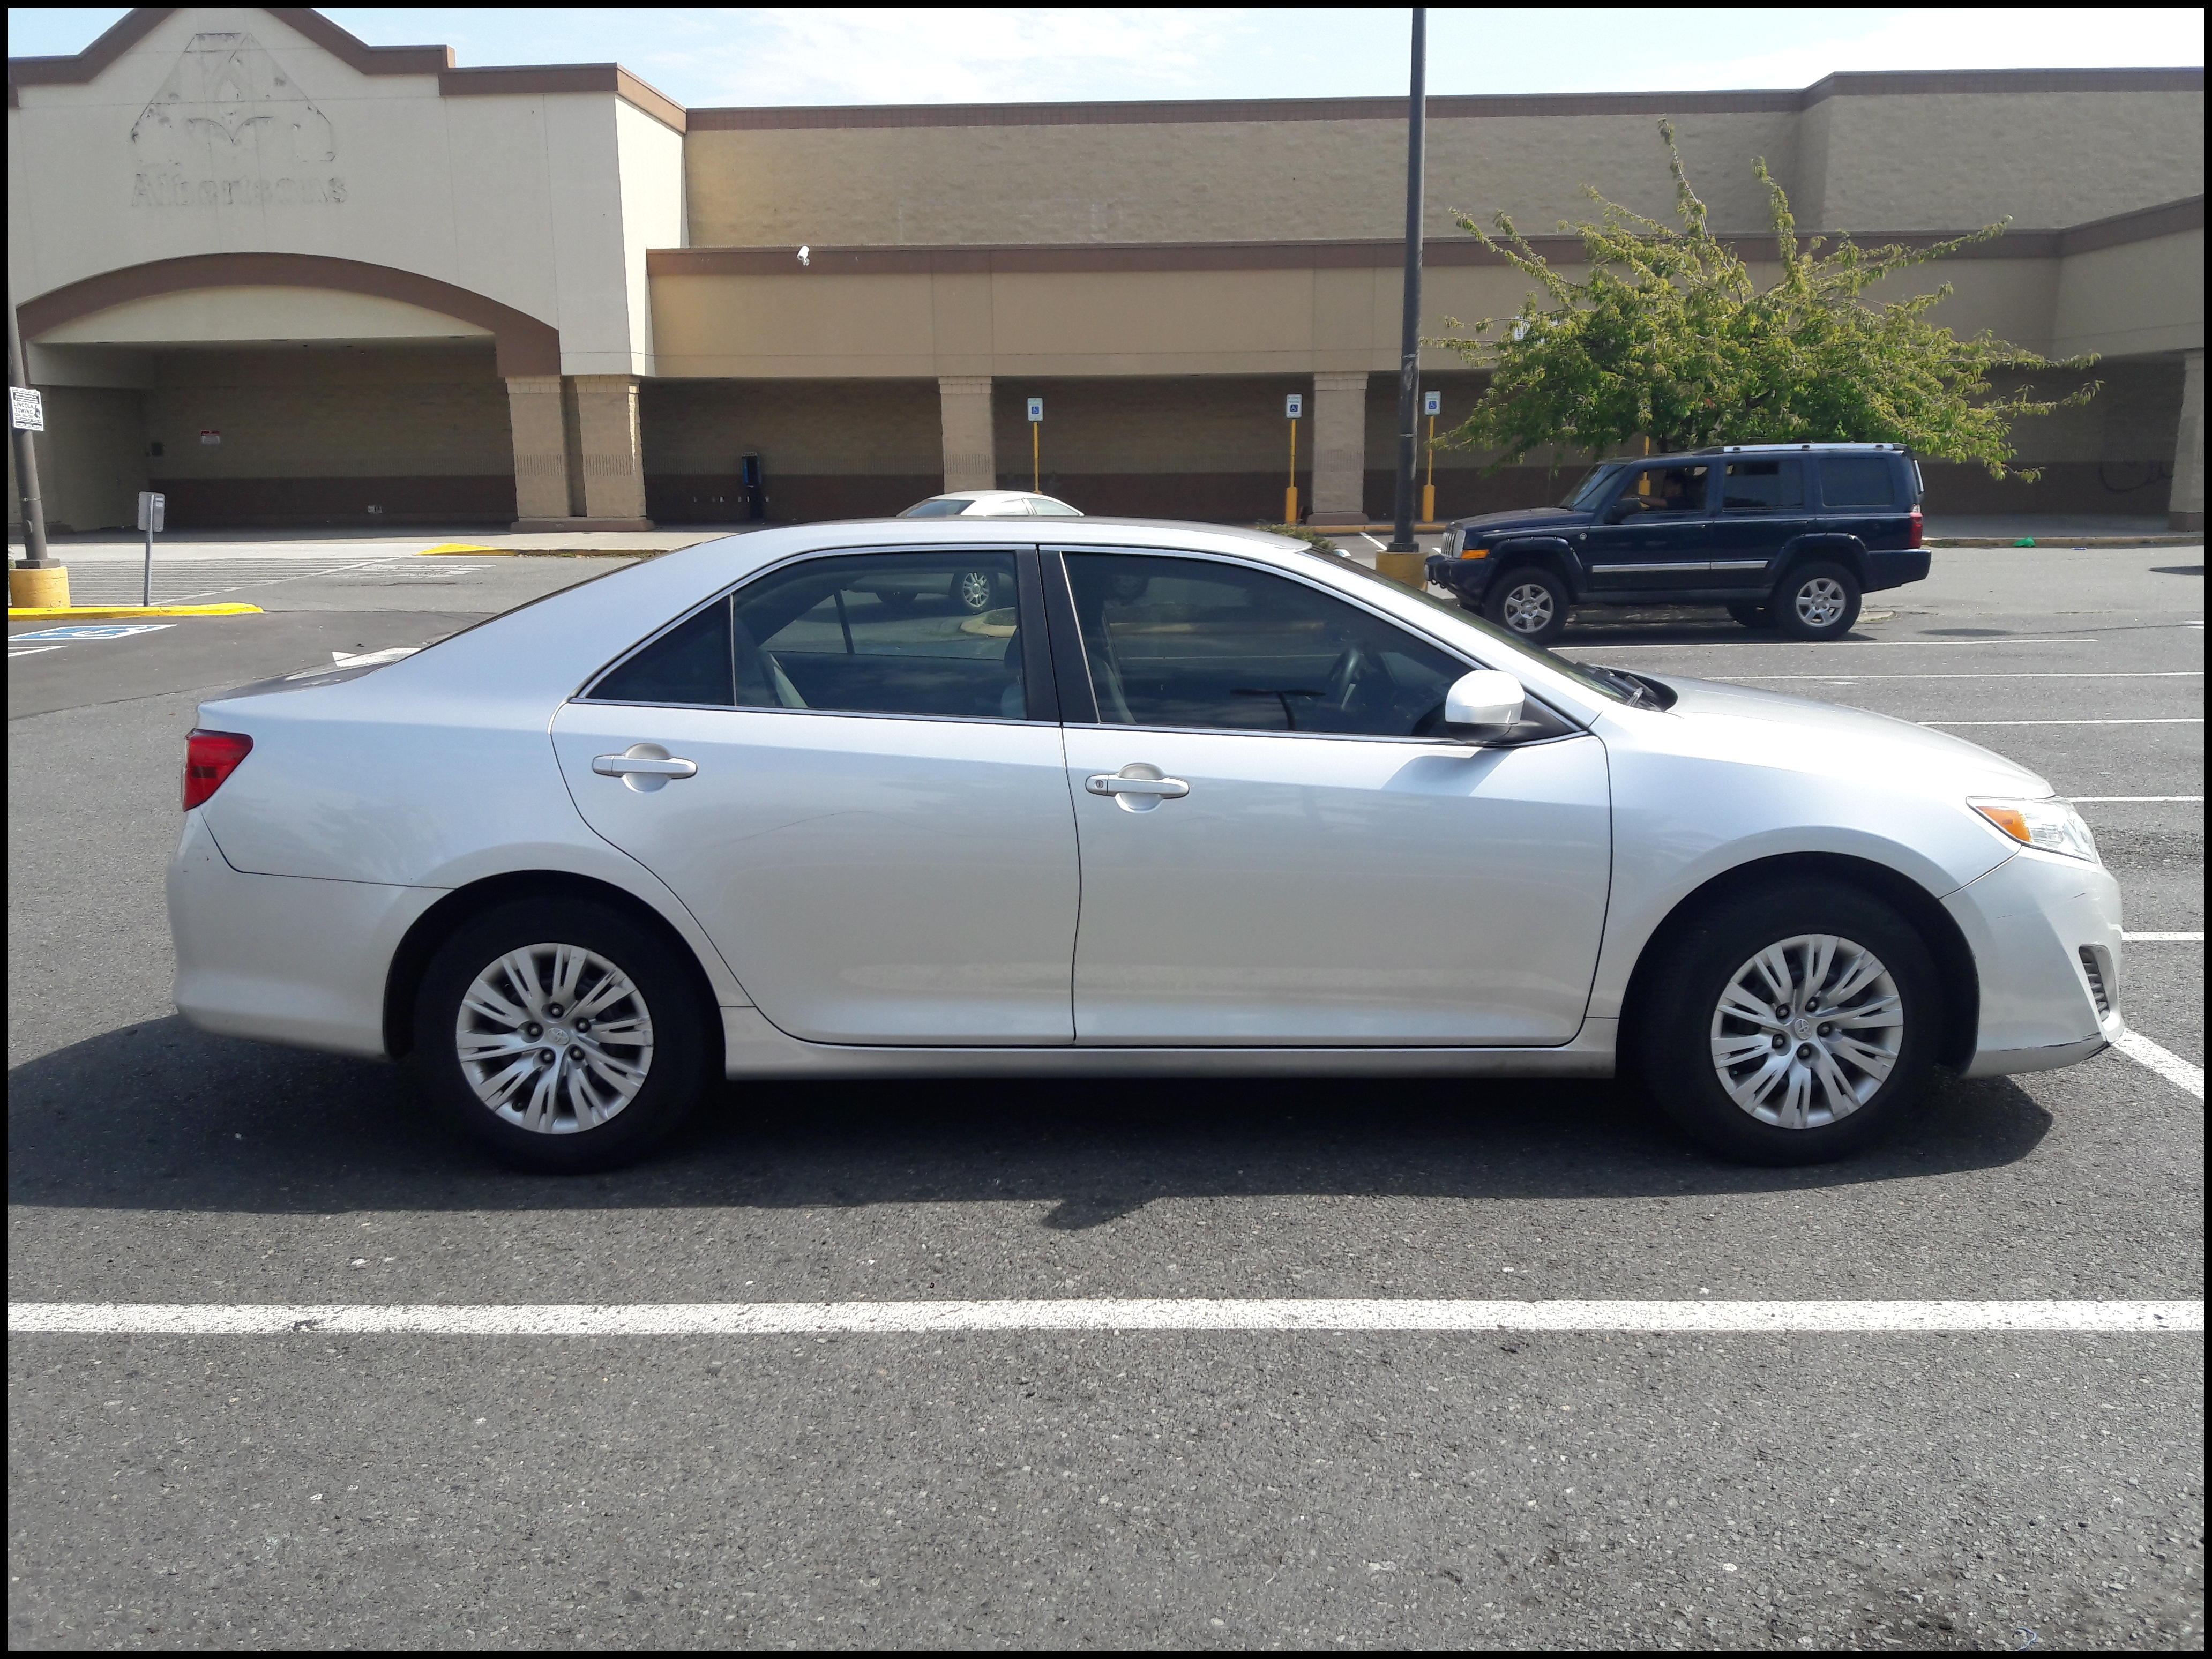 Used 2012 Toyota Camry For Sale near NE Northgate Way Seattle WA